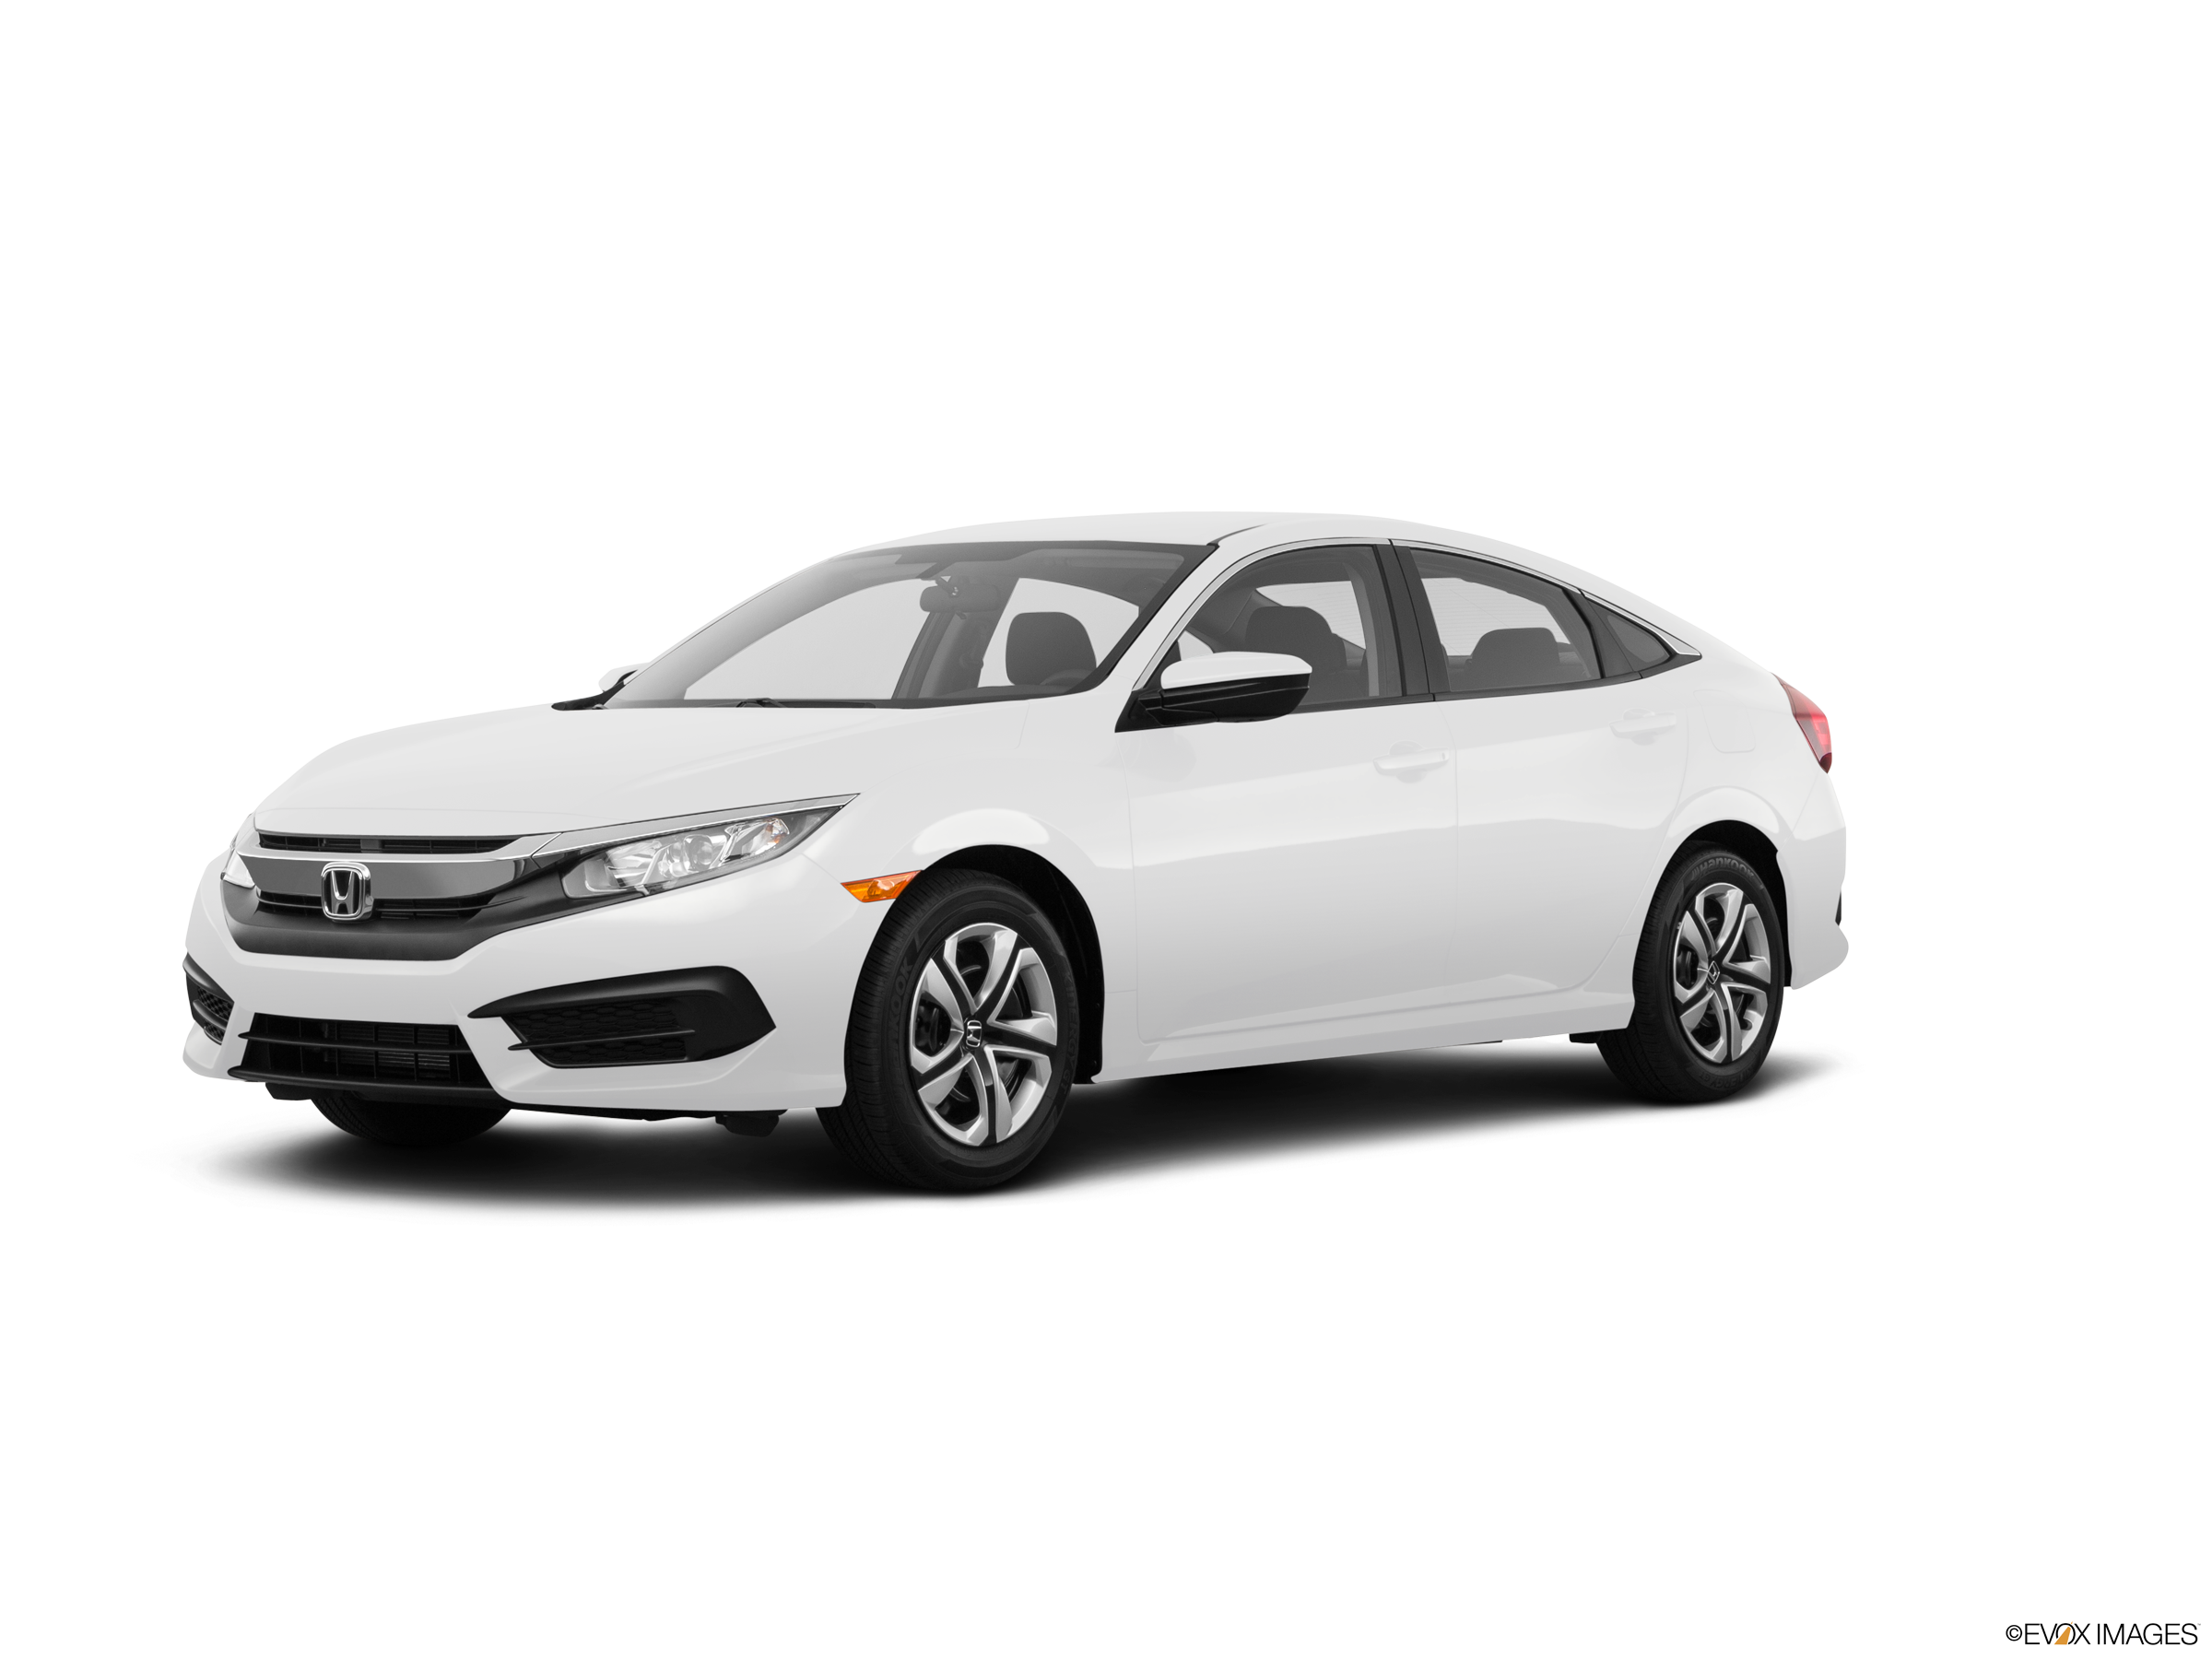 10 Best Sedans Under $25,000 - 2018 Honda Civic